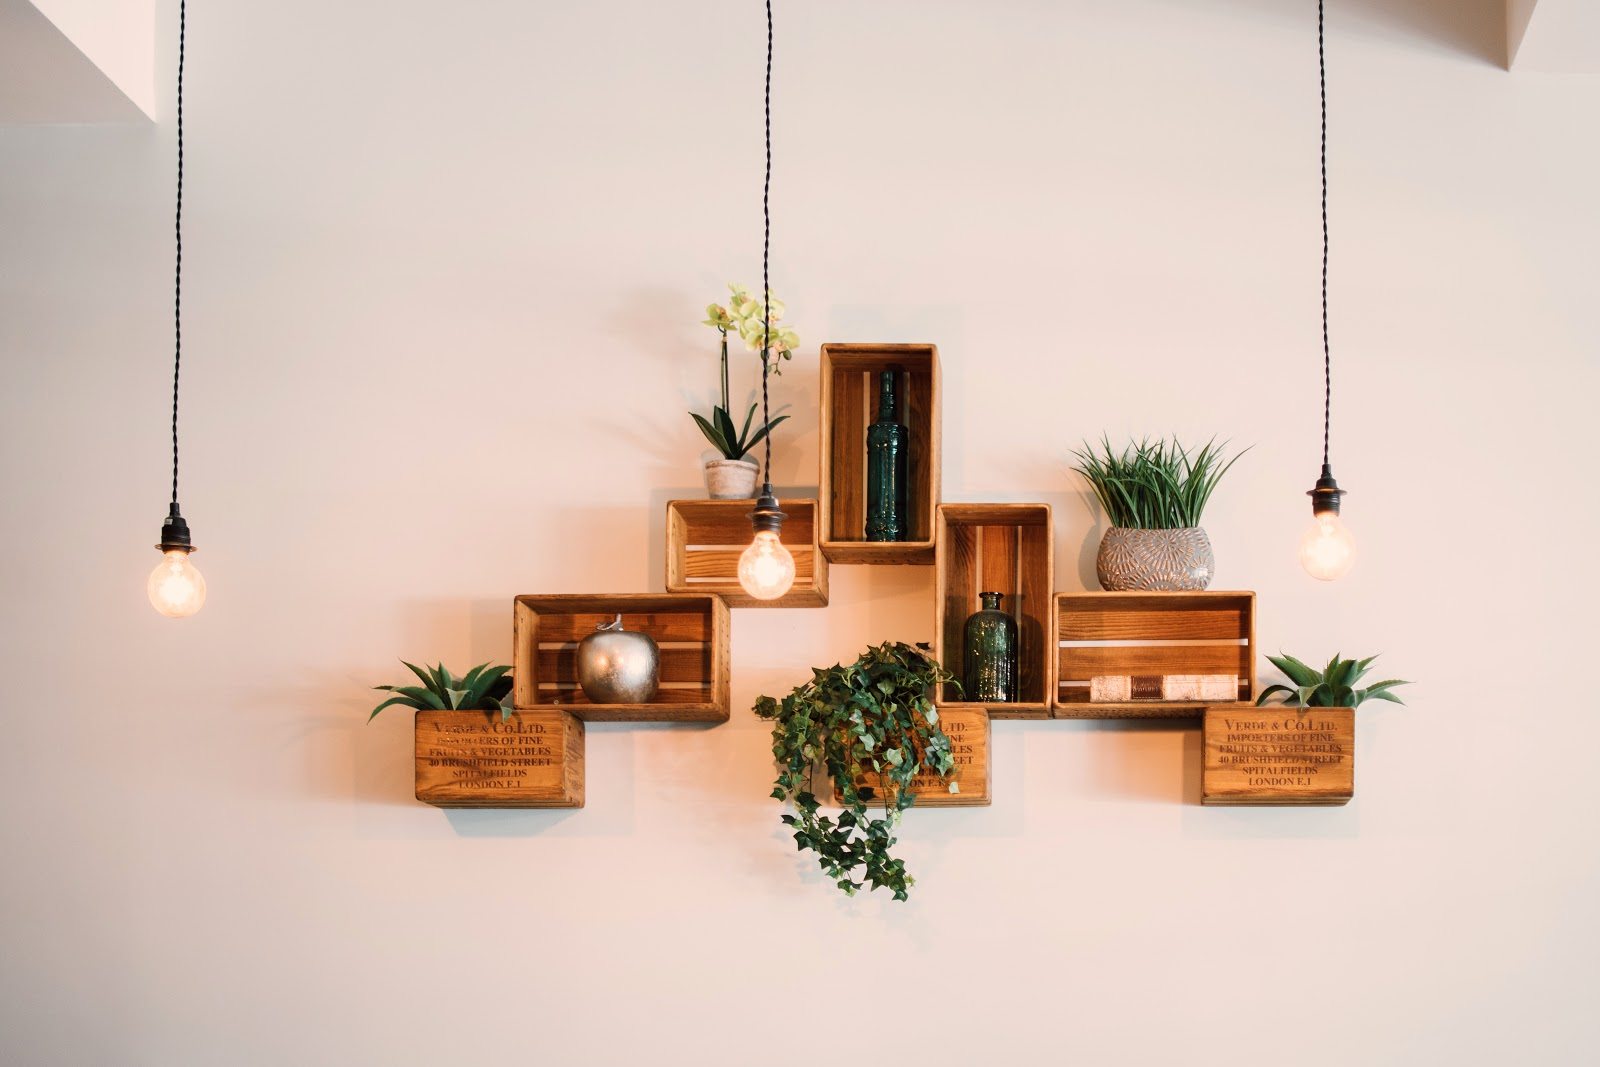 Contemporary Decoration Design Crates Mounted on Wall